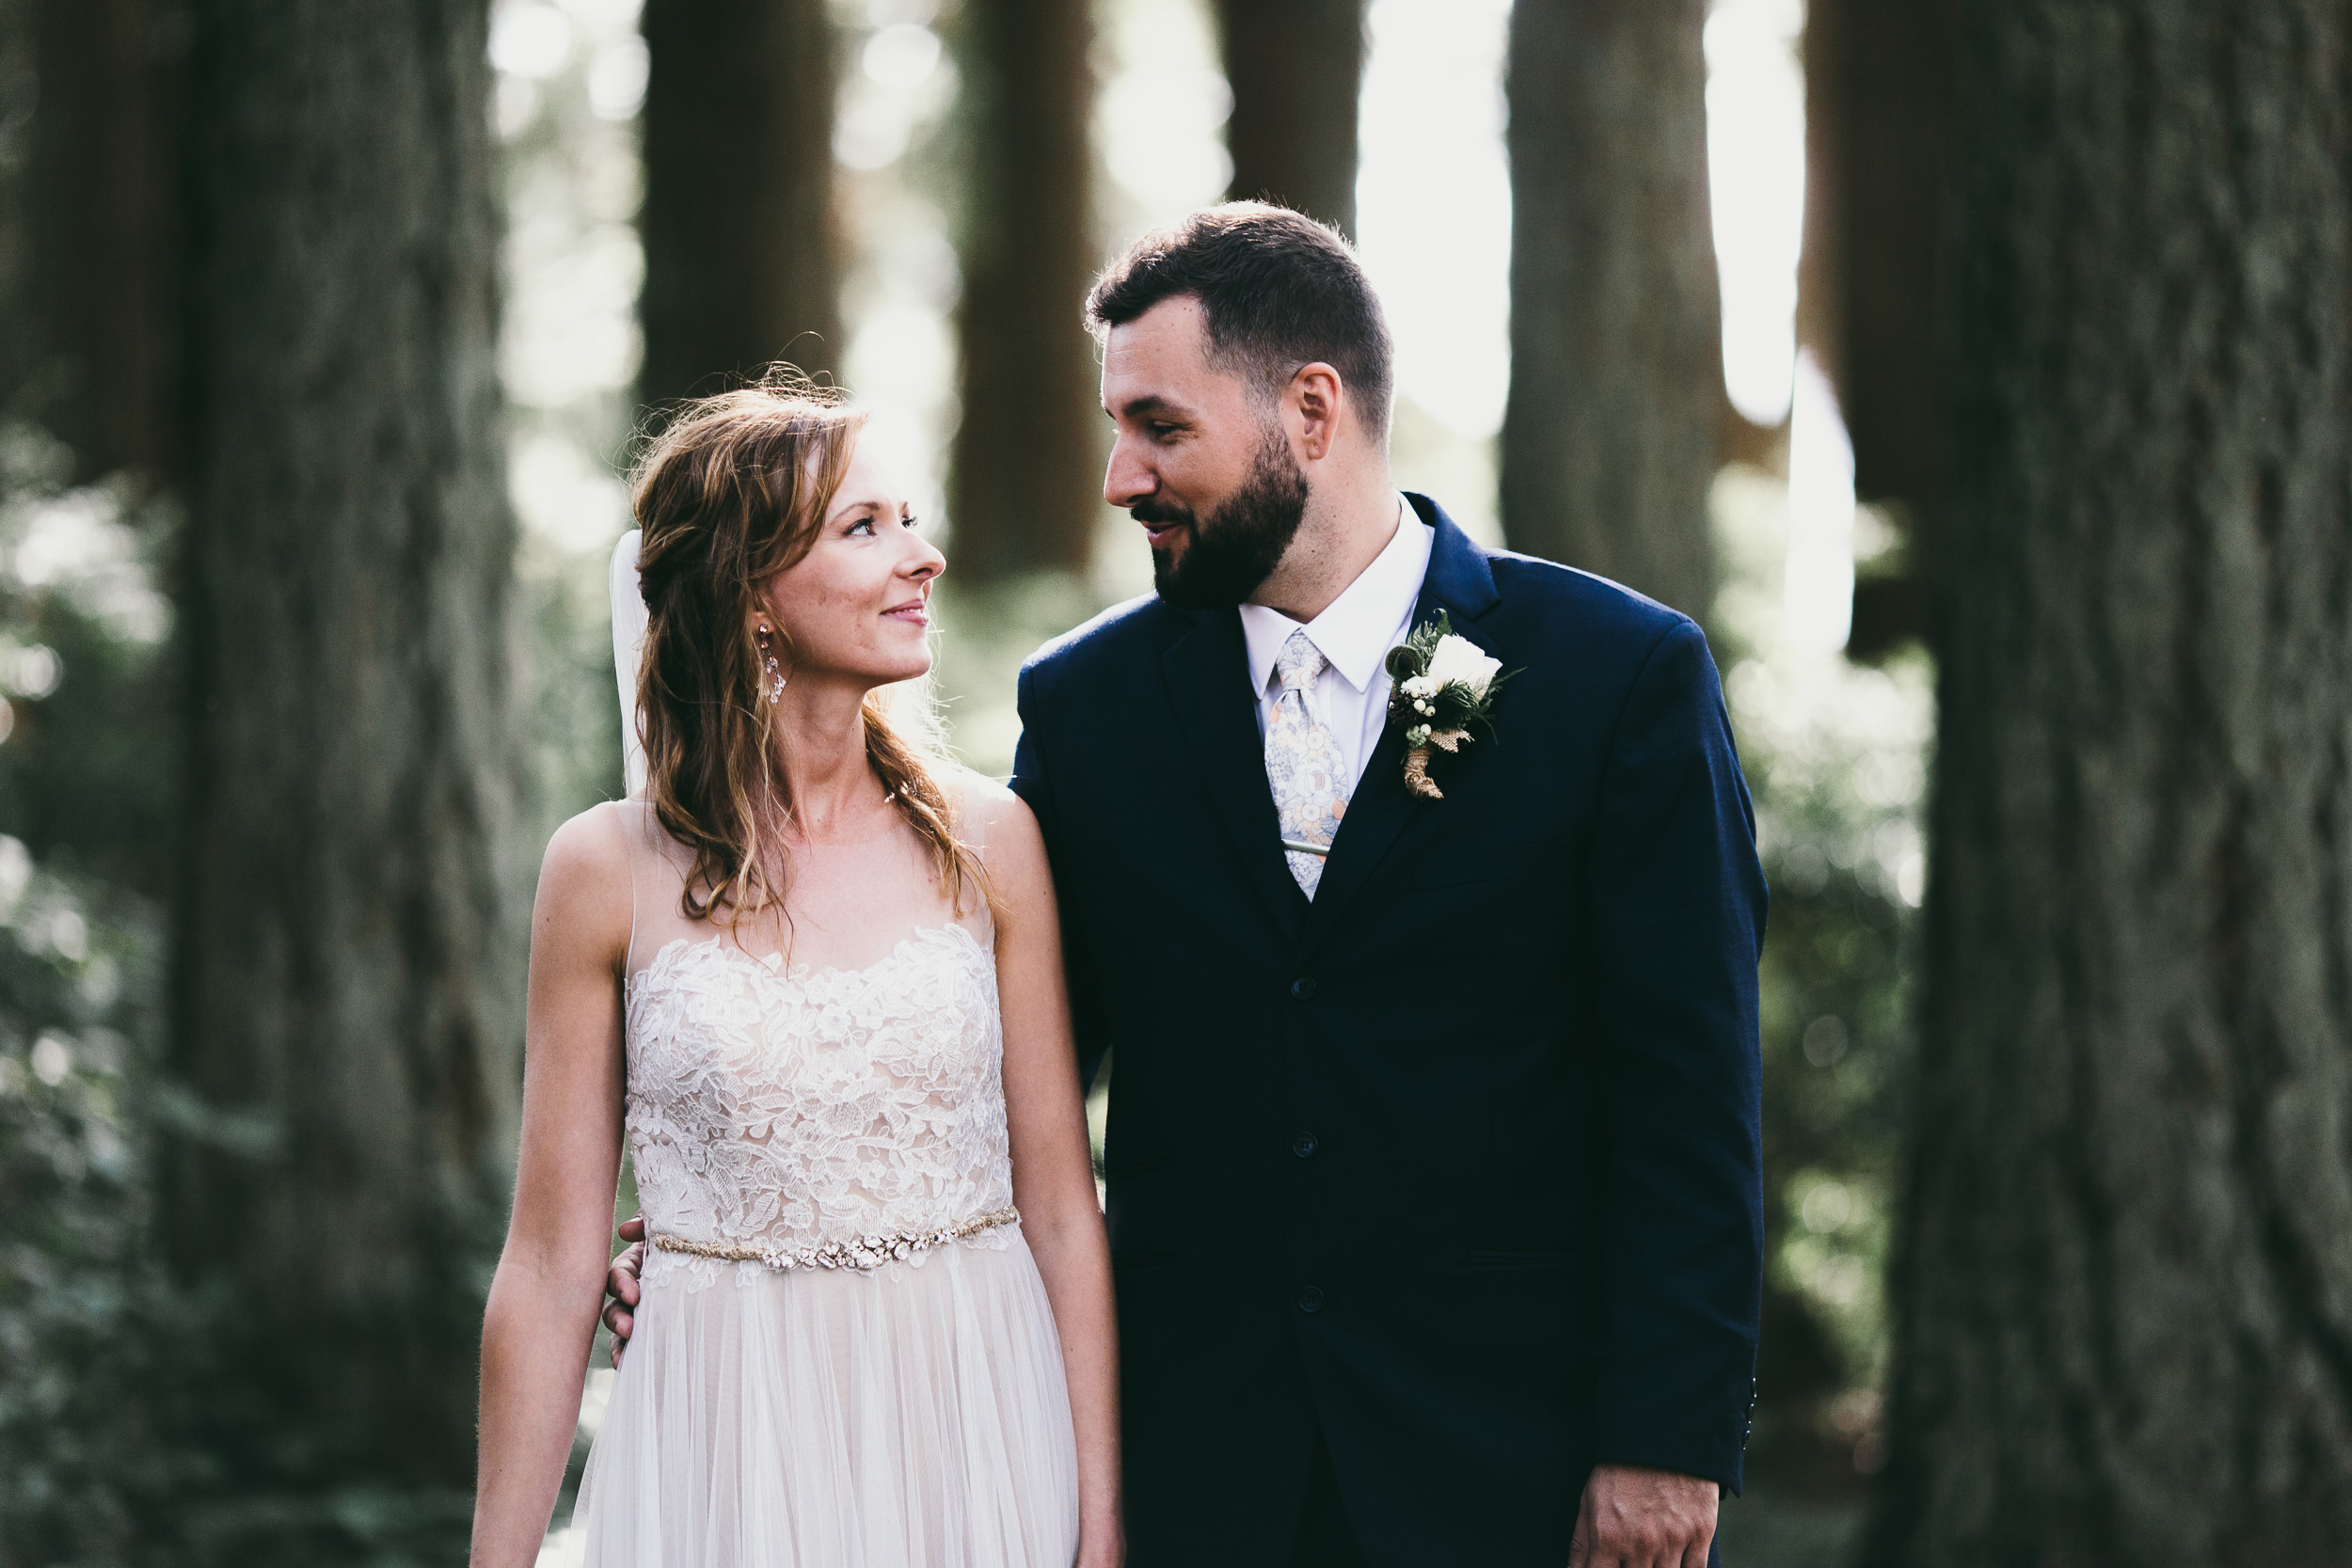 kitsap memorial state park bride and groom look lovingly into each other's eyes